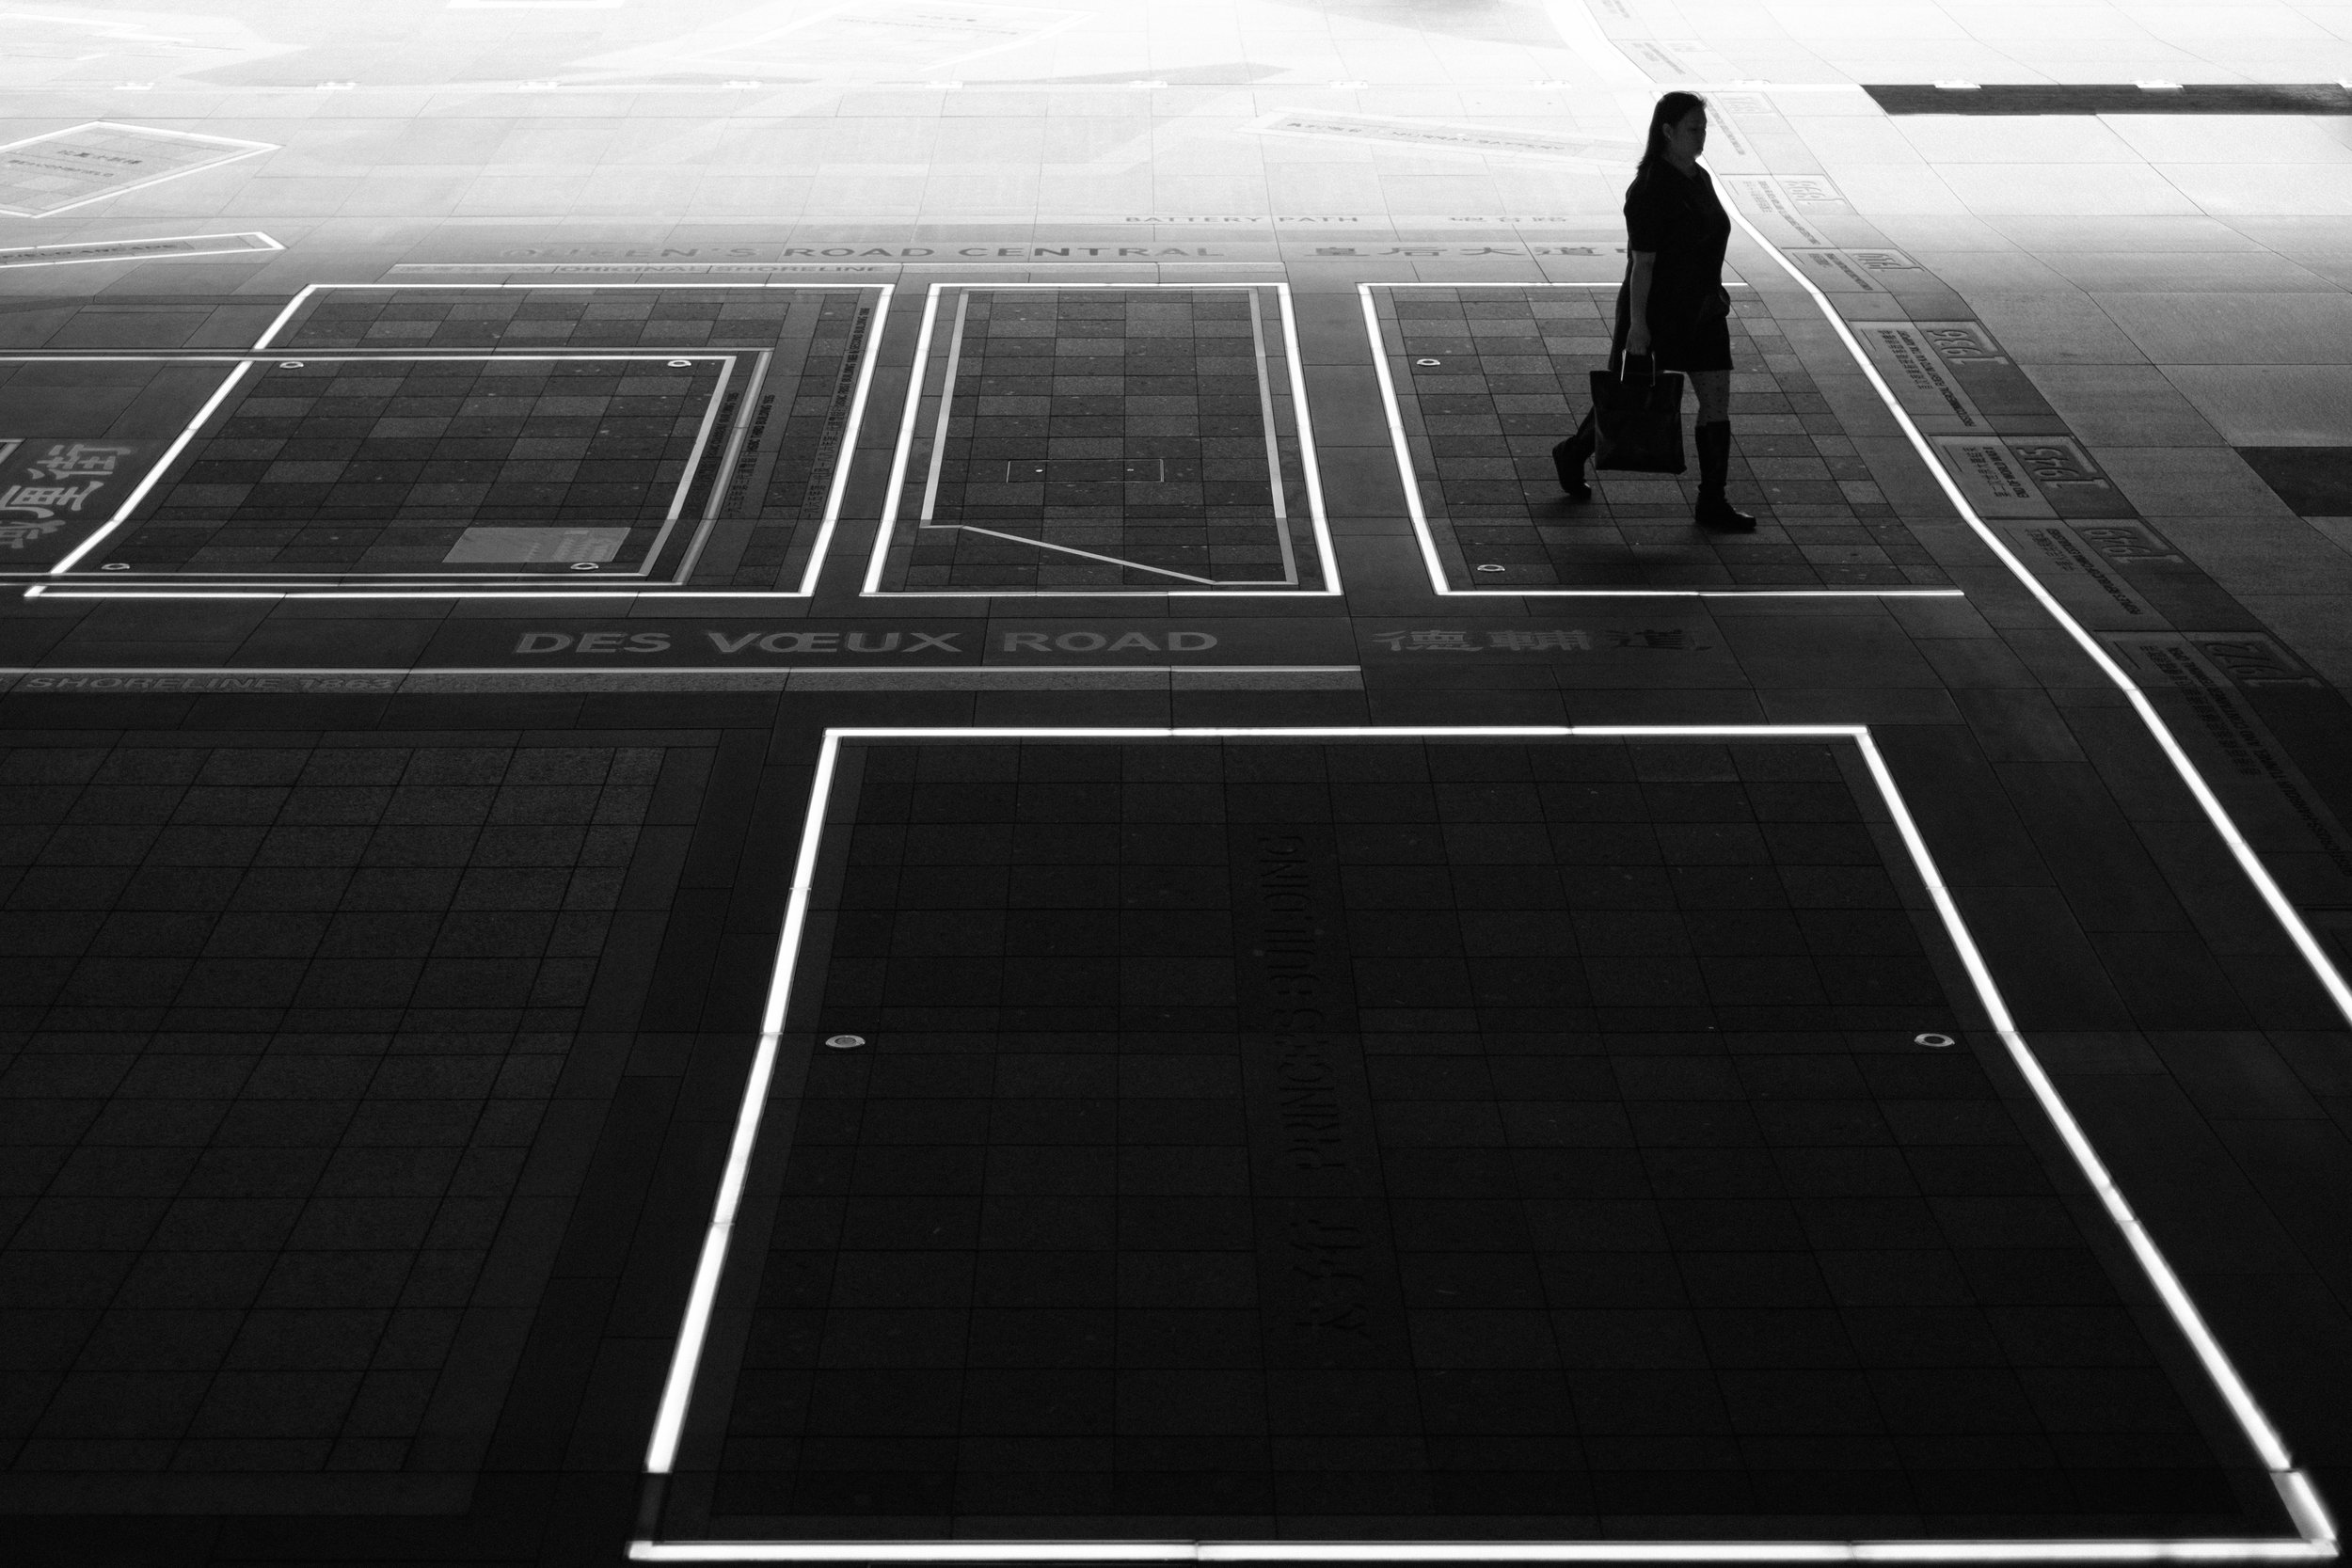 A woman walks across the plaza beneath the HSBC bank building in Hong Kong Central